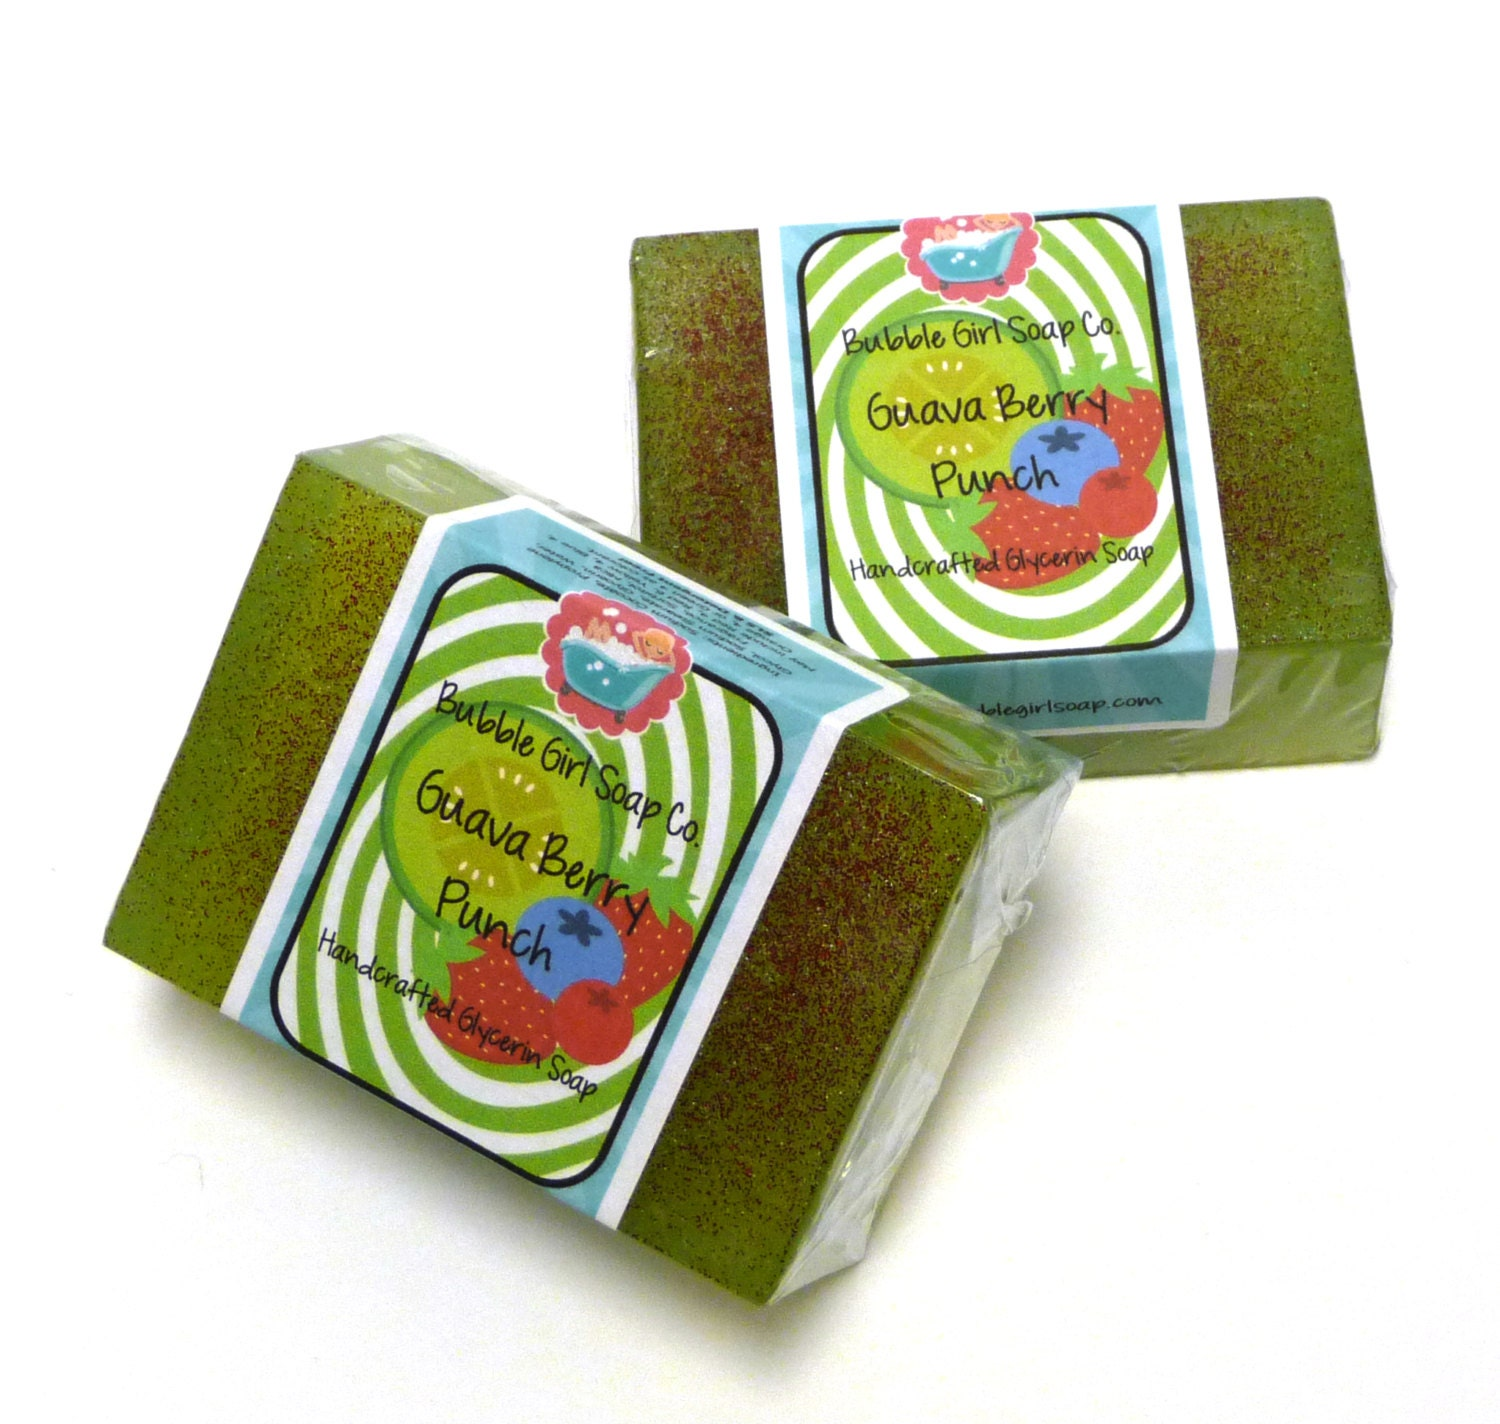 Guava soap recipe